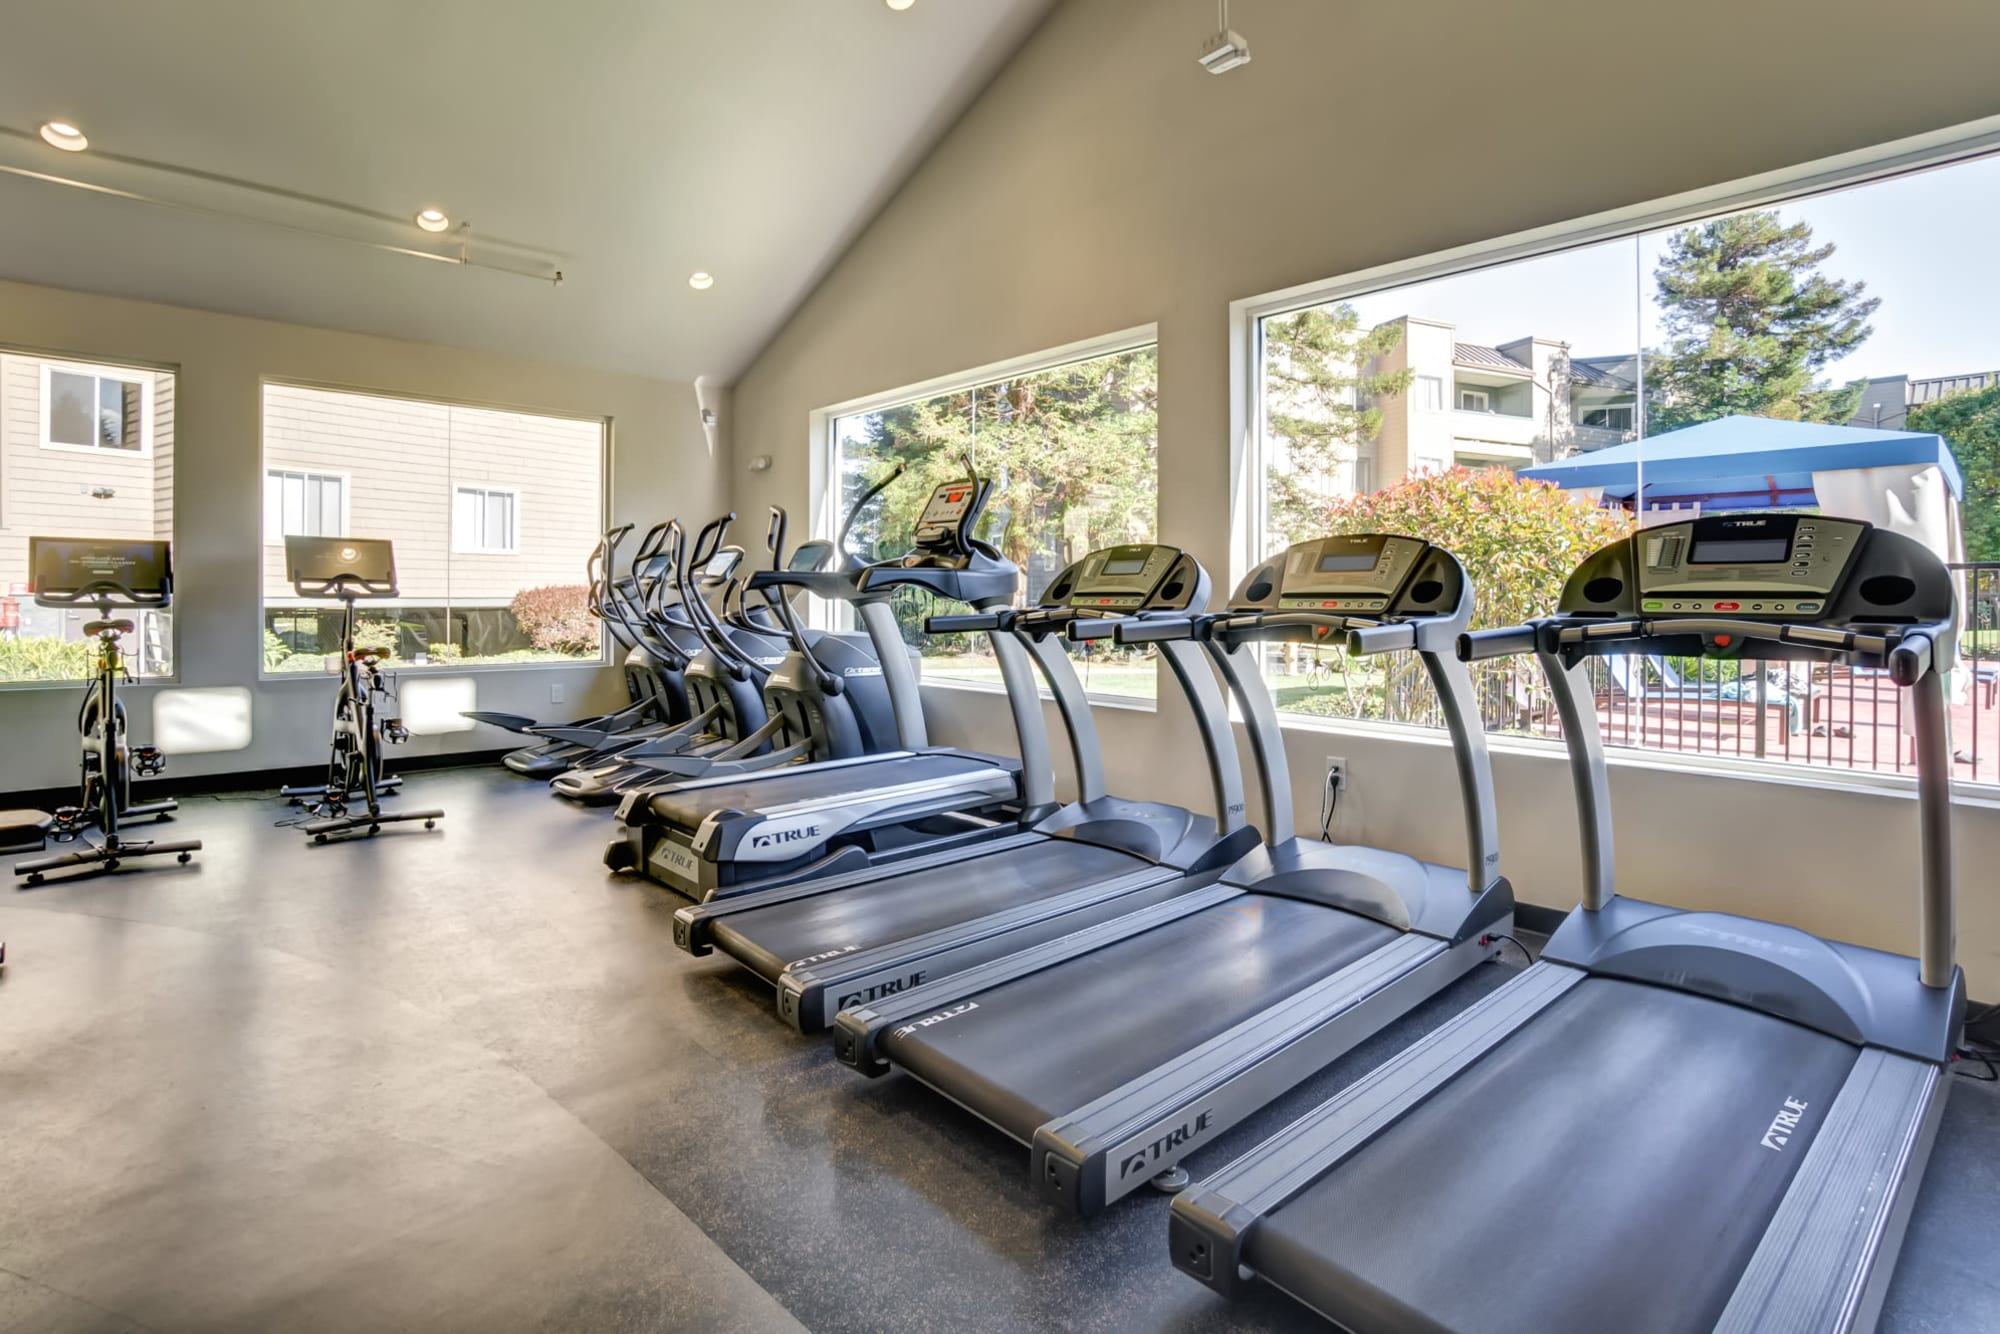 Part of the fitness center at Serramonte Ridge Apartment Homes in Daly City, California